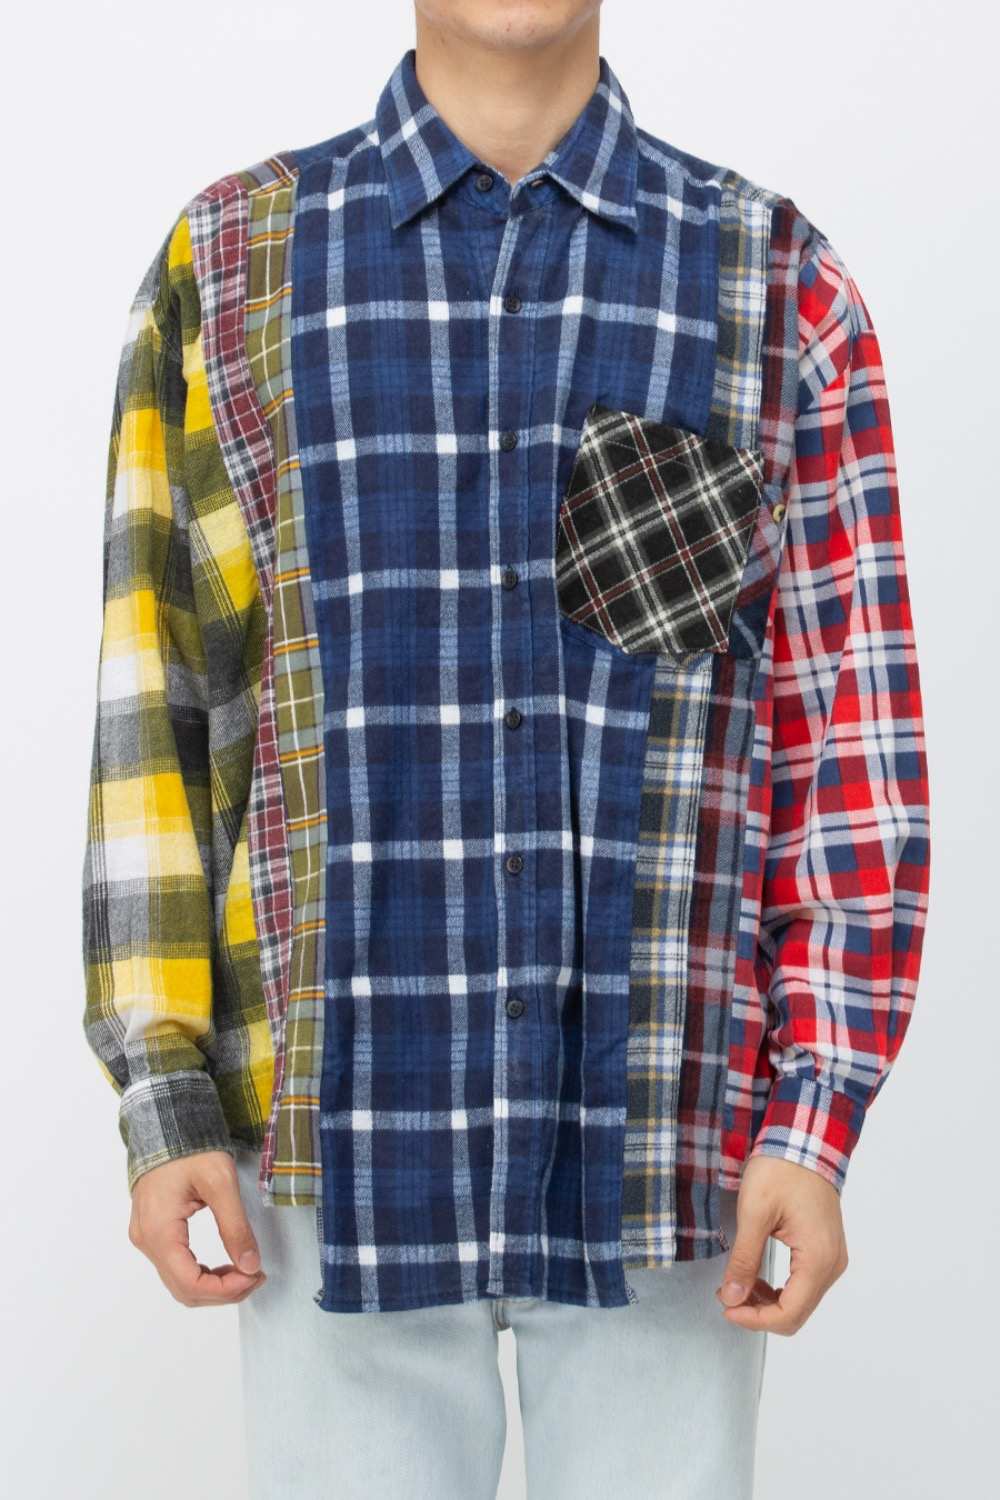 (WIDE-7)REBUILD BY NEEDLES FLANNEL SHIRT - 7CUTS WIDE SHIRT